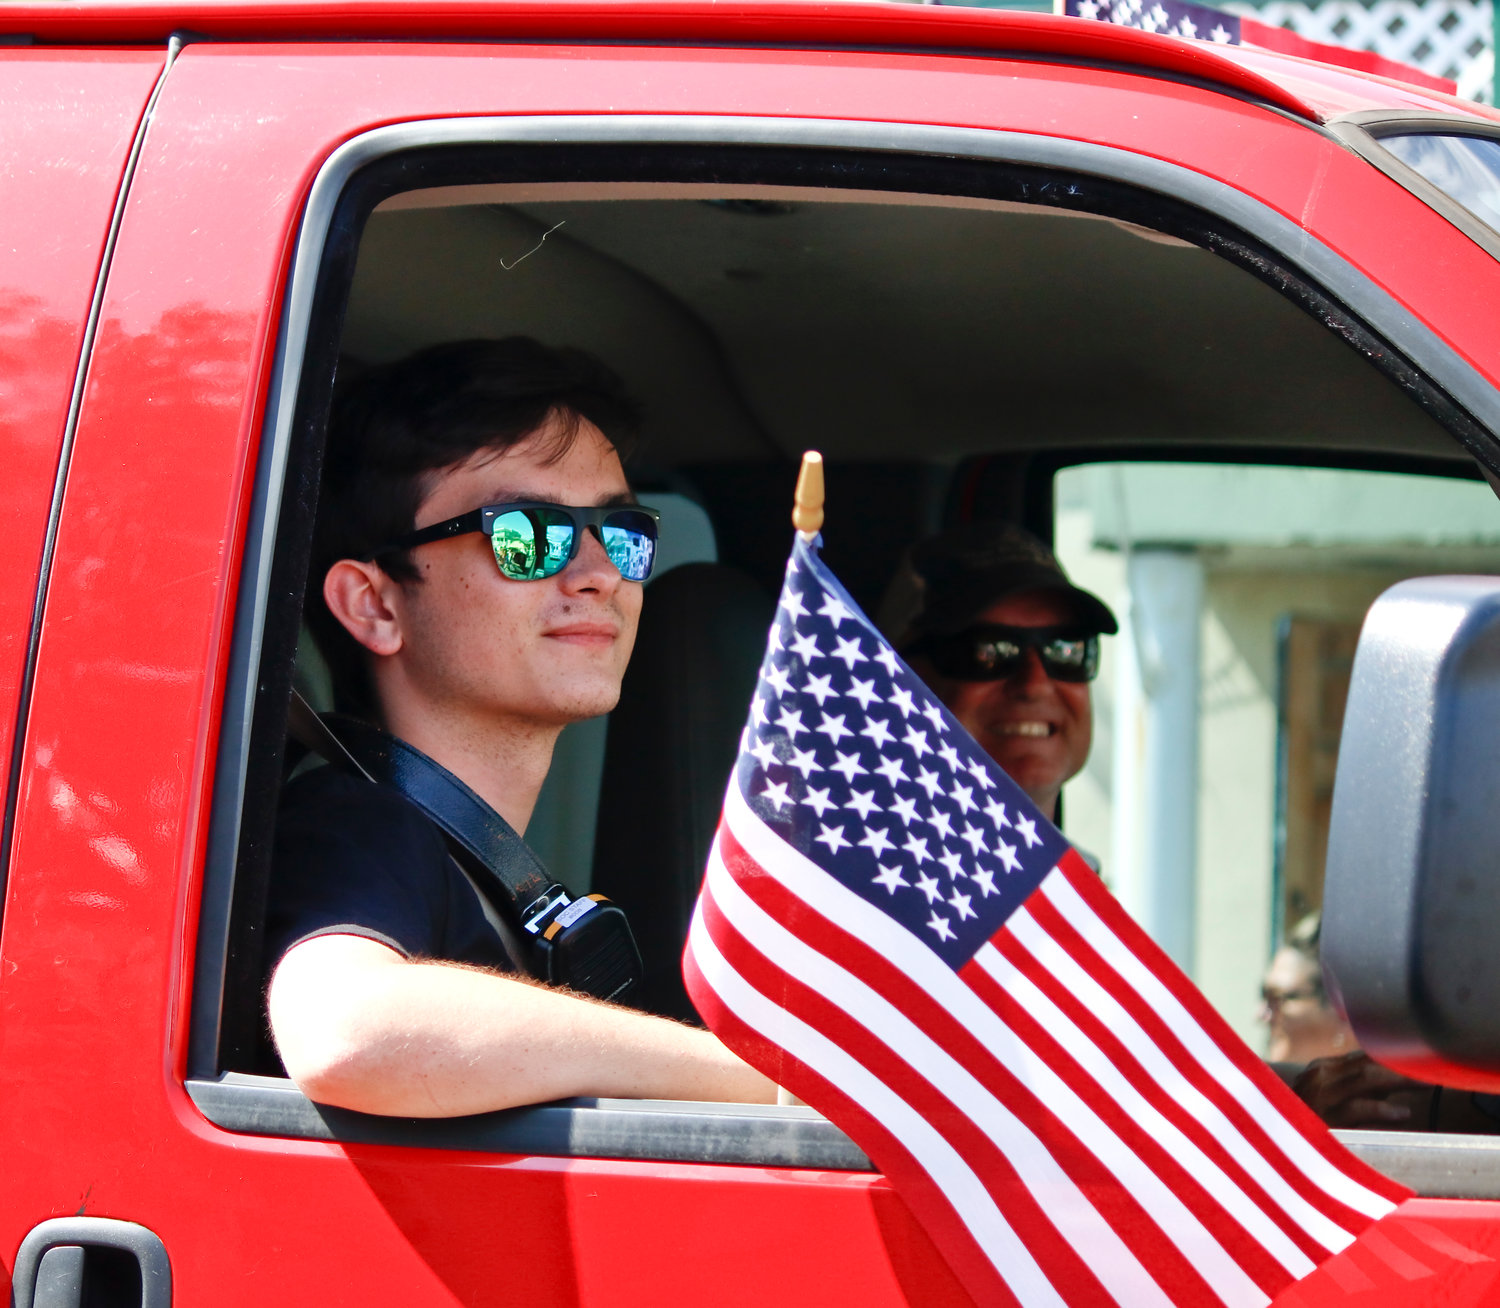 Continuing his tradition of volunteering with the Waterfront Warriors, Liam Noonan, above, made the trip from Florida to help out with this year's events. He rode along the parade route with the Baldwin Fire Department.